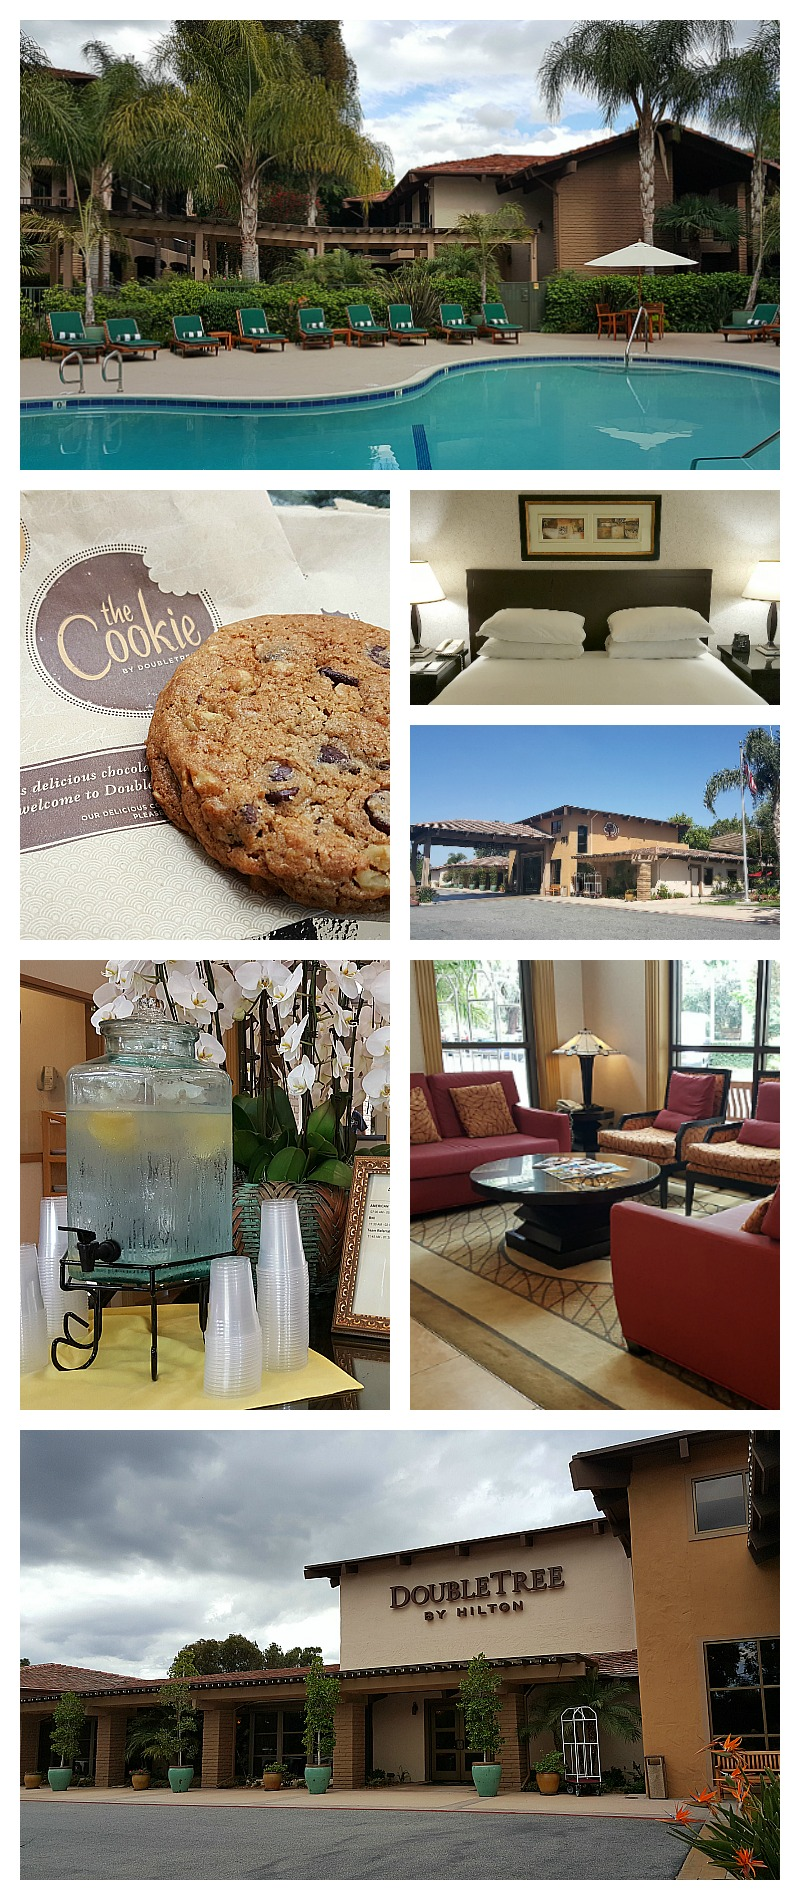 The Doubletree by Hilton Claremont Hotel